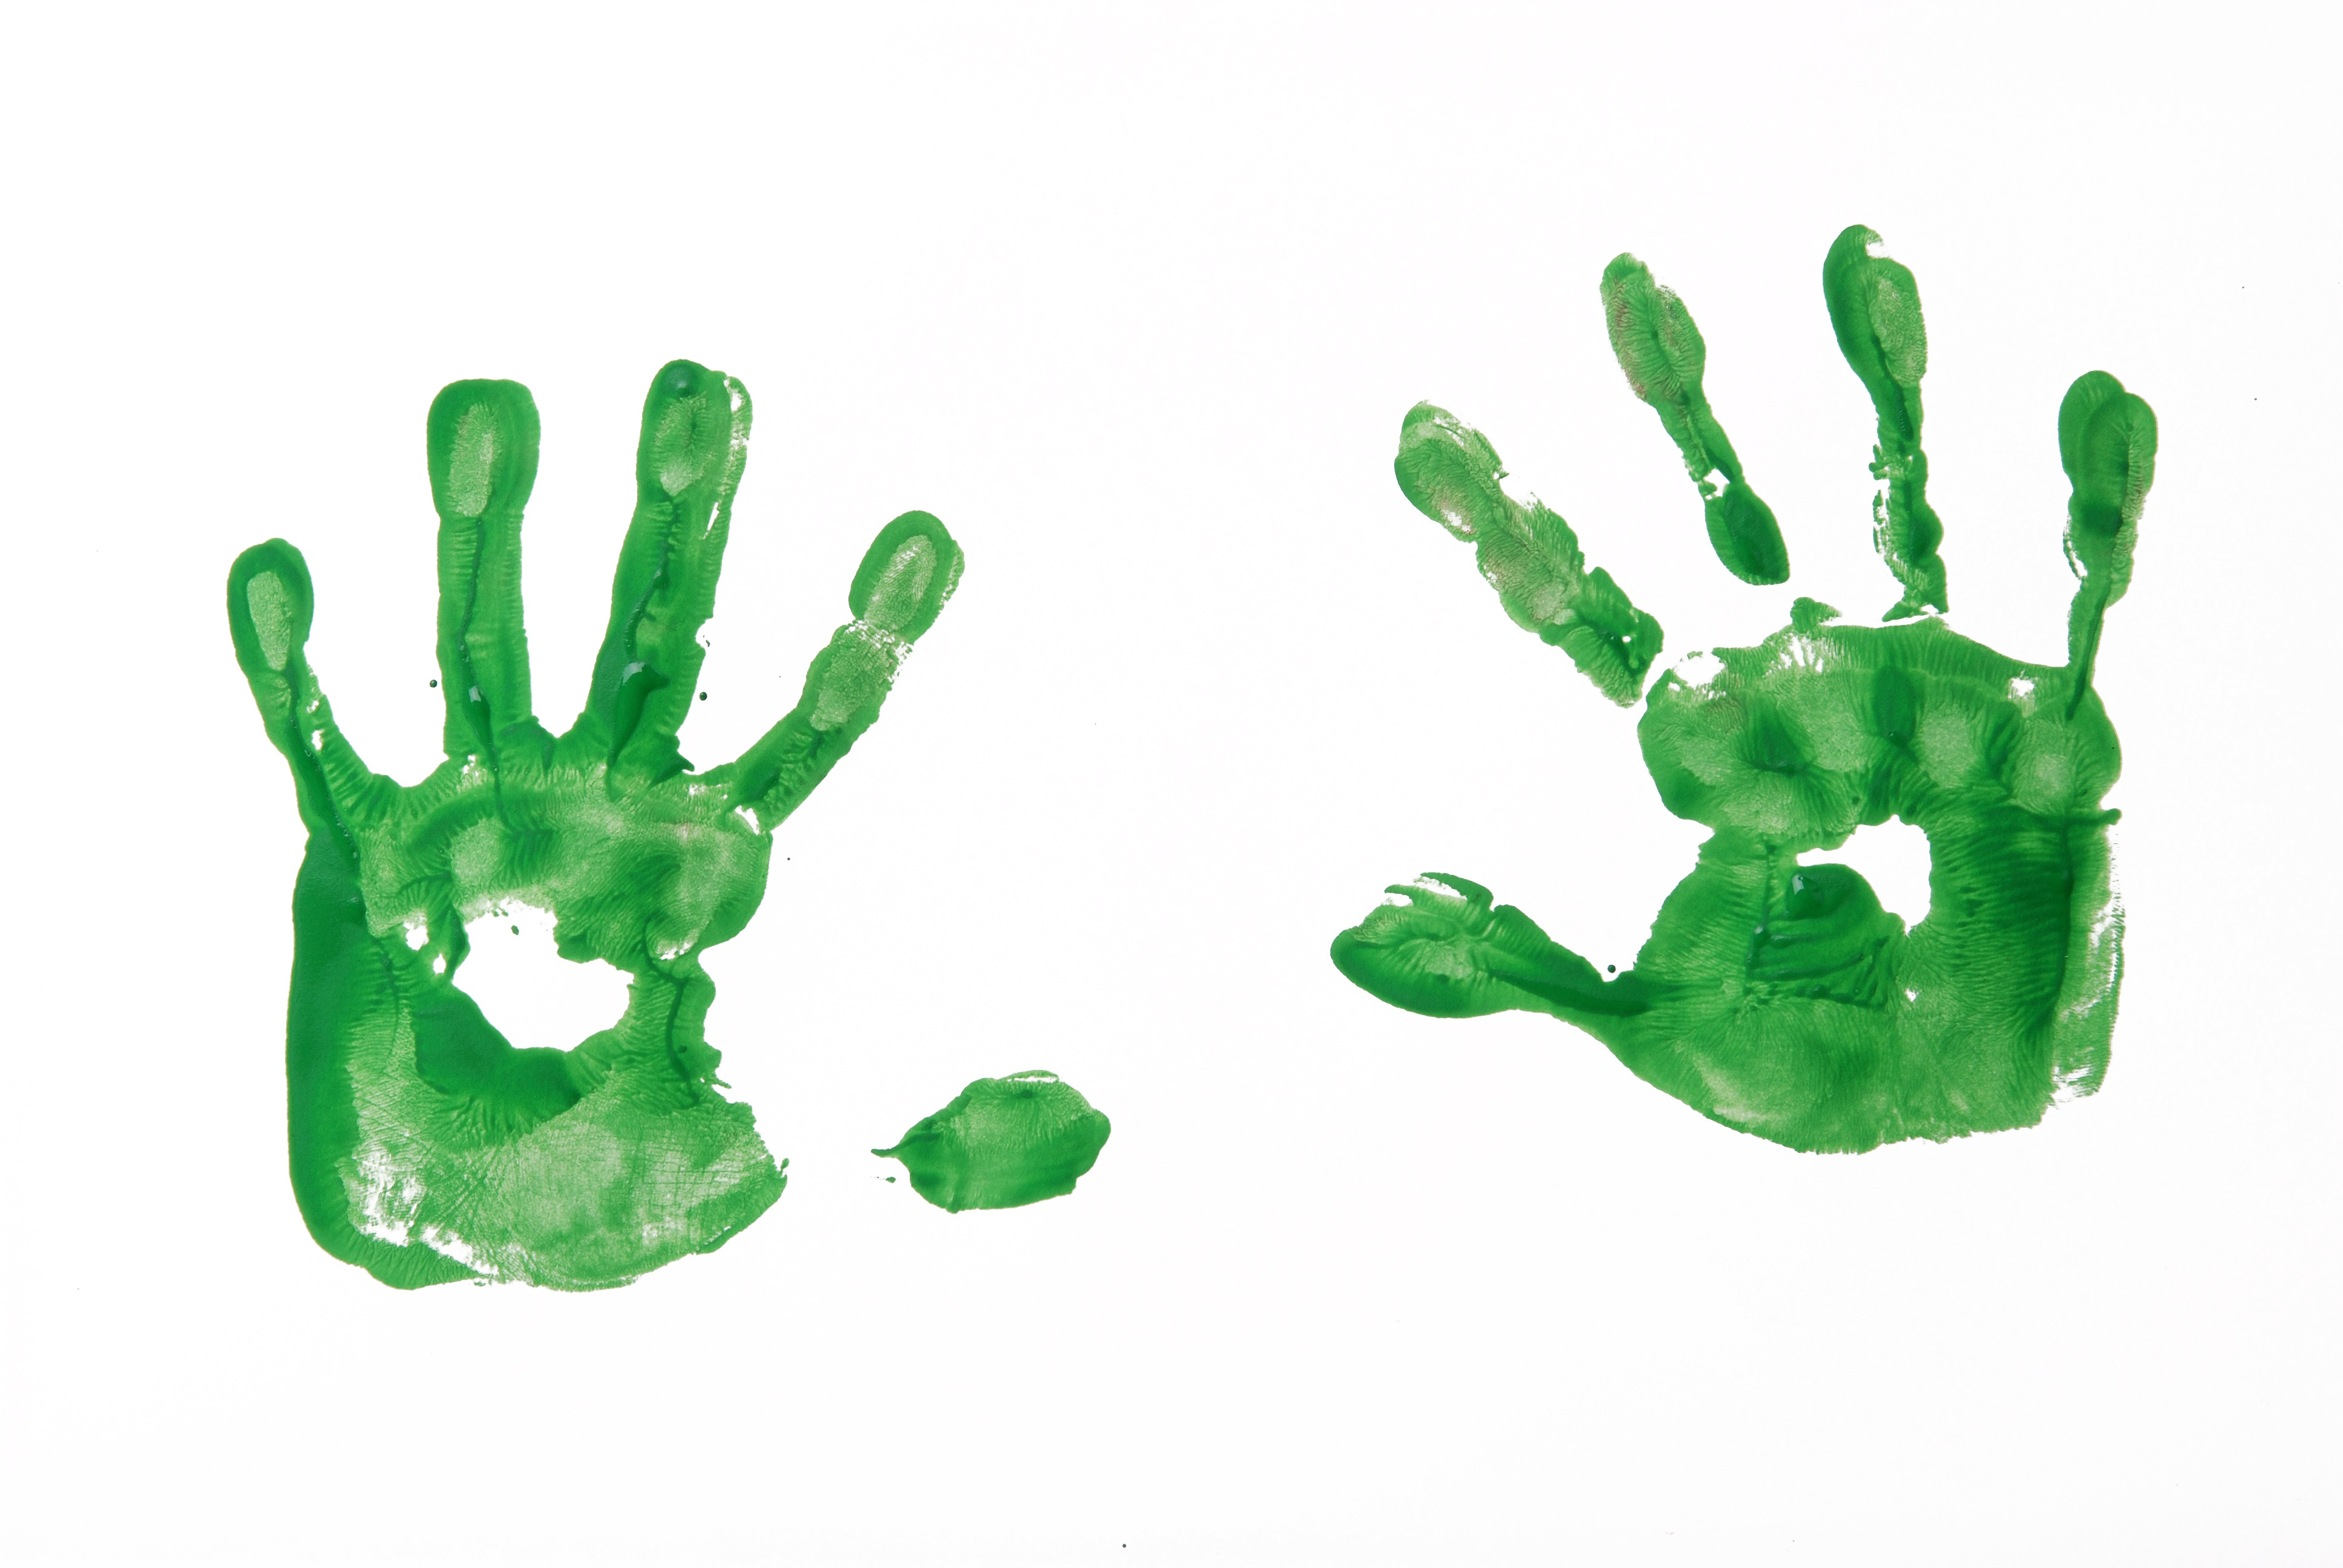 Handprint clipart little hand. Paint pencil and in